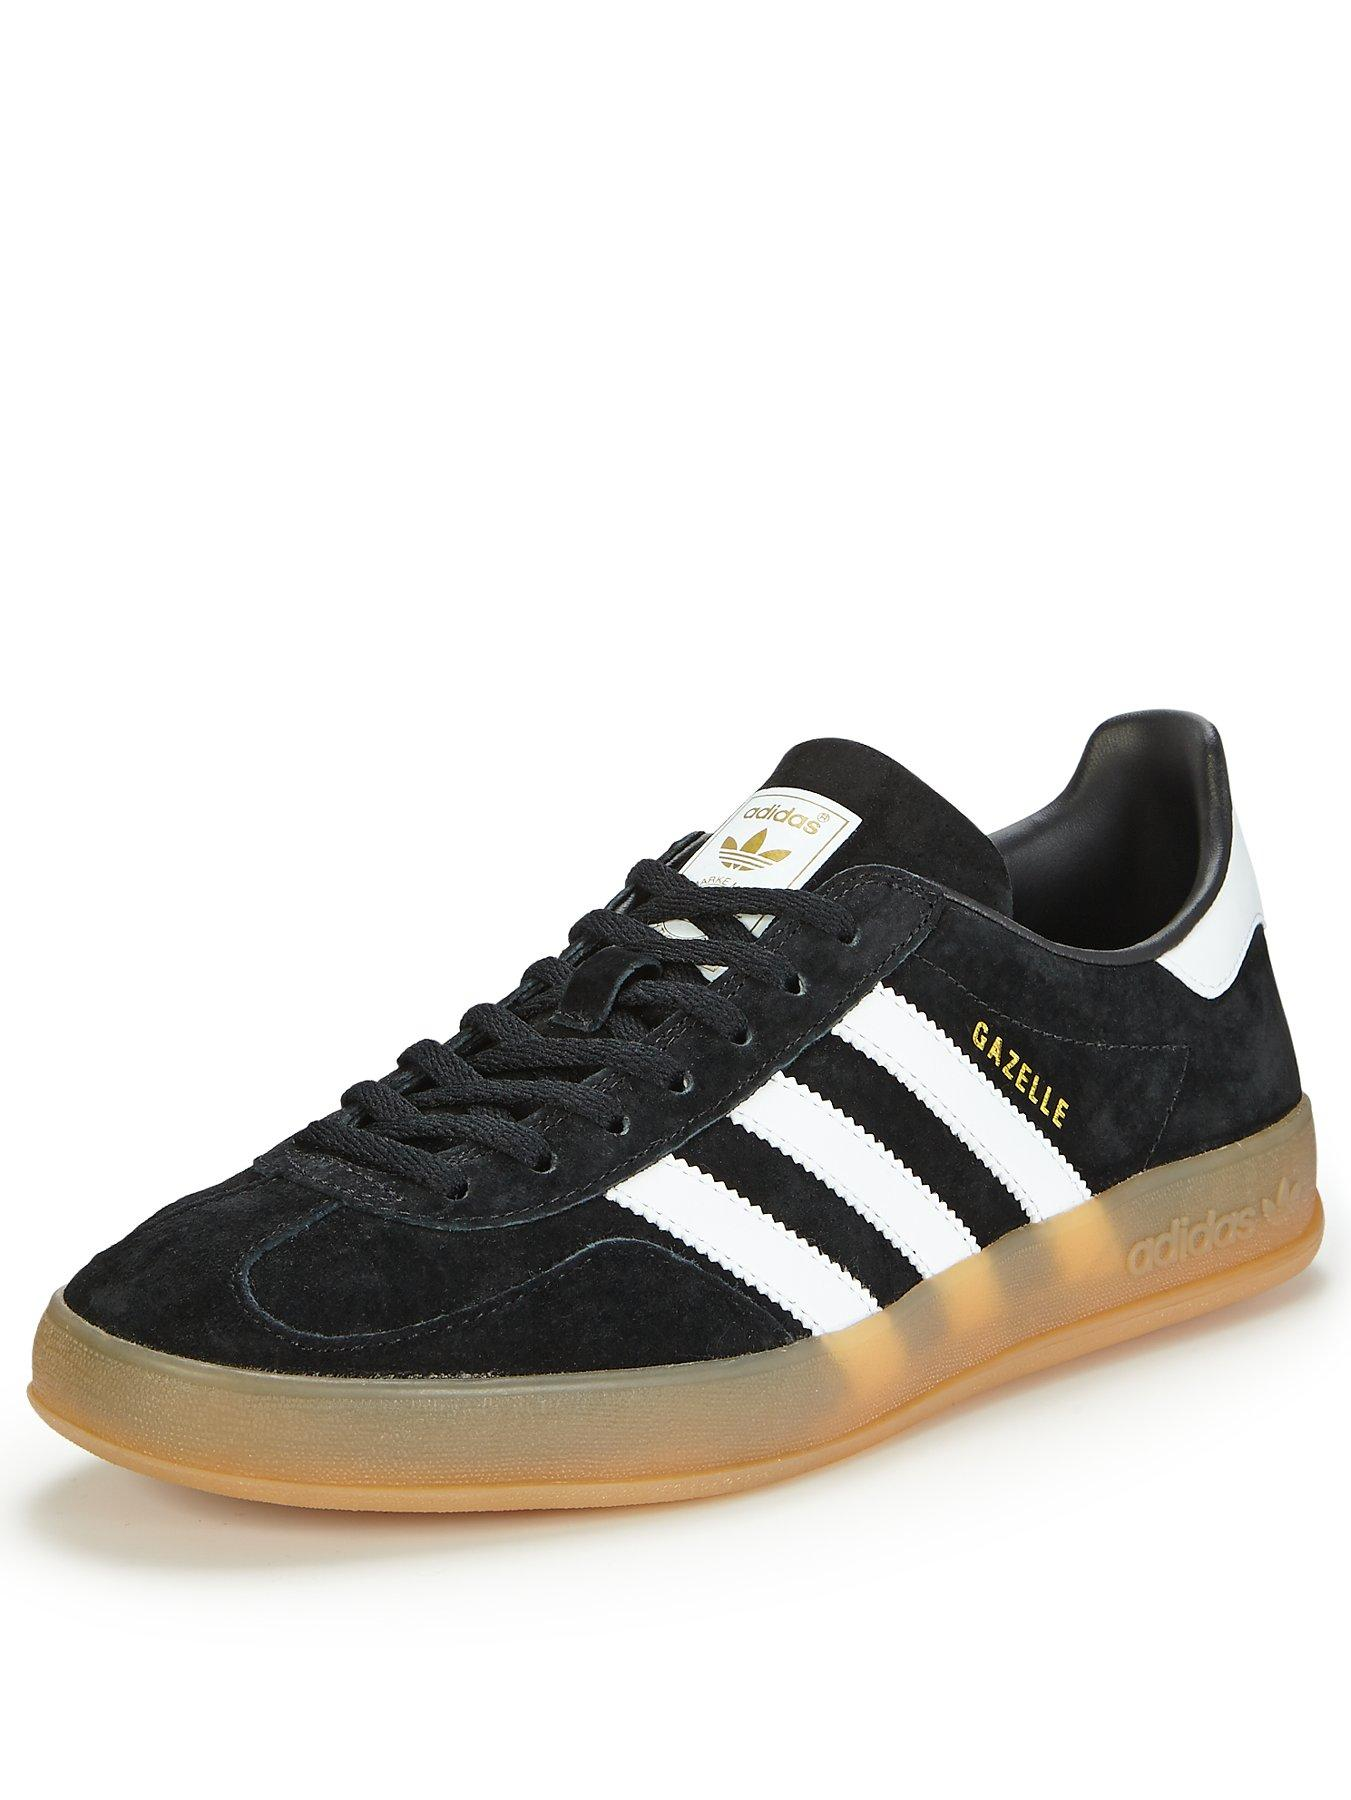 adidas exclusive trainers